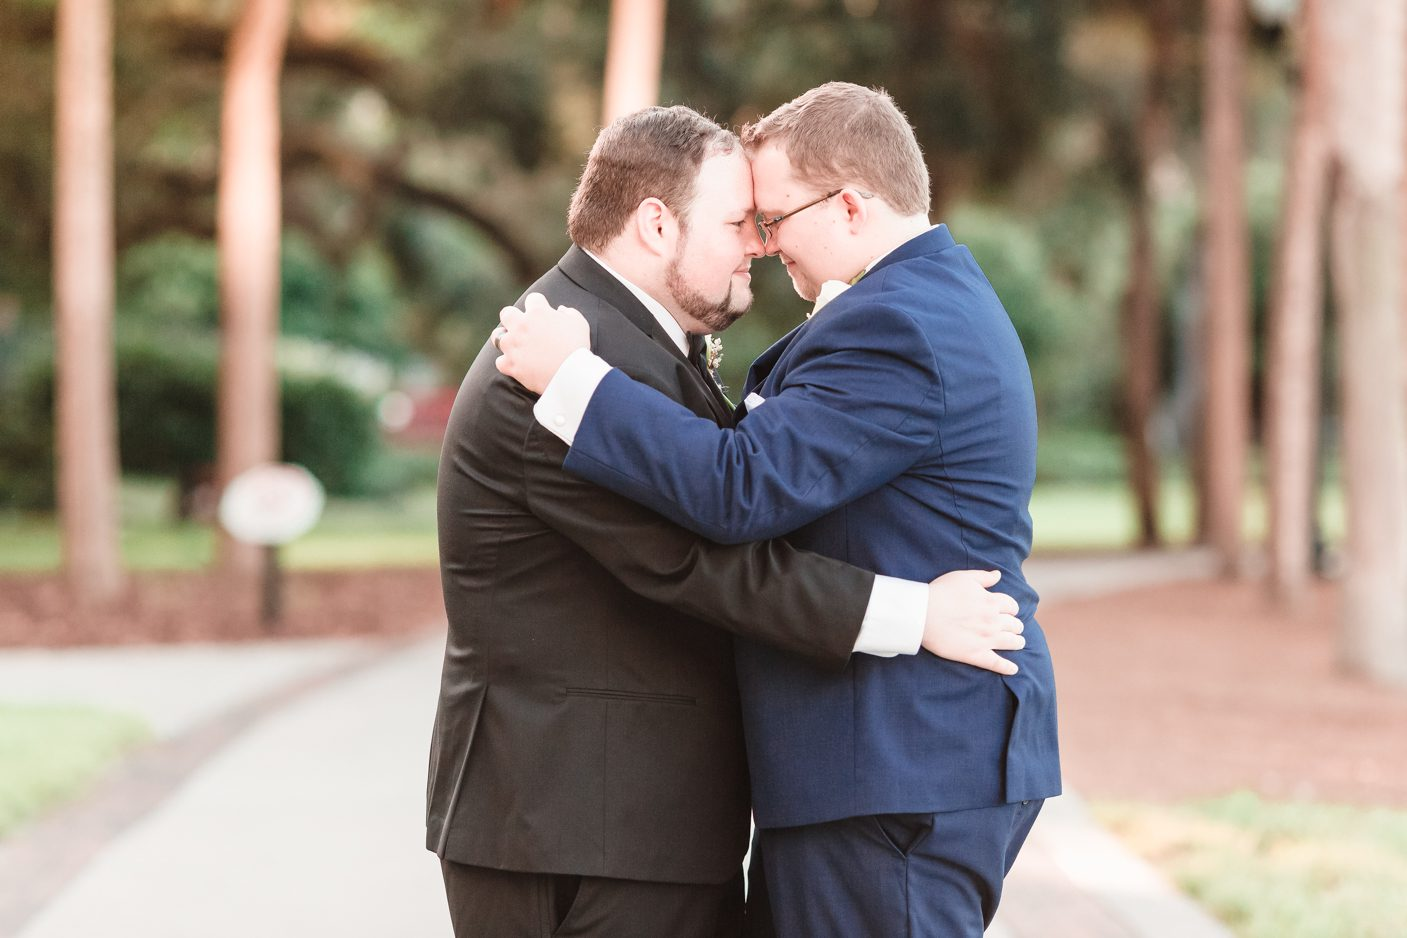 Two grooms embrace during their gay wedding at Lake Eola in downtown Orlando